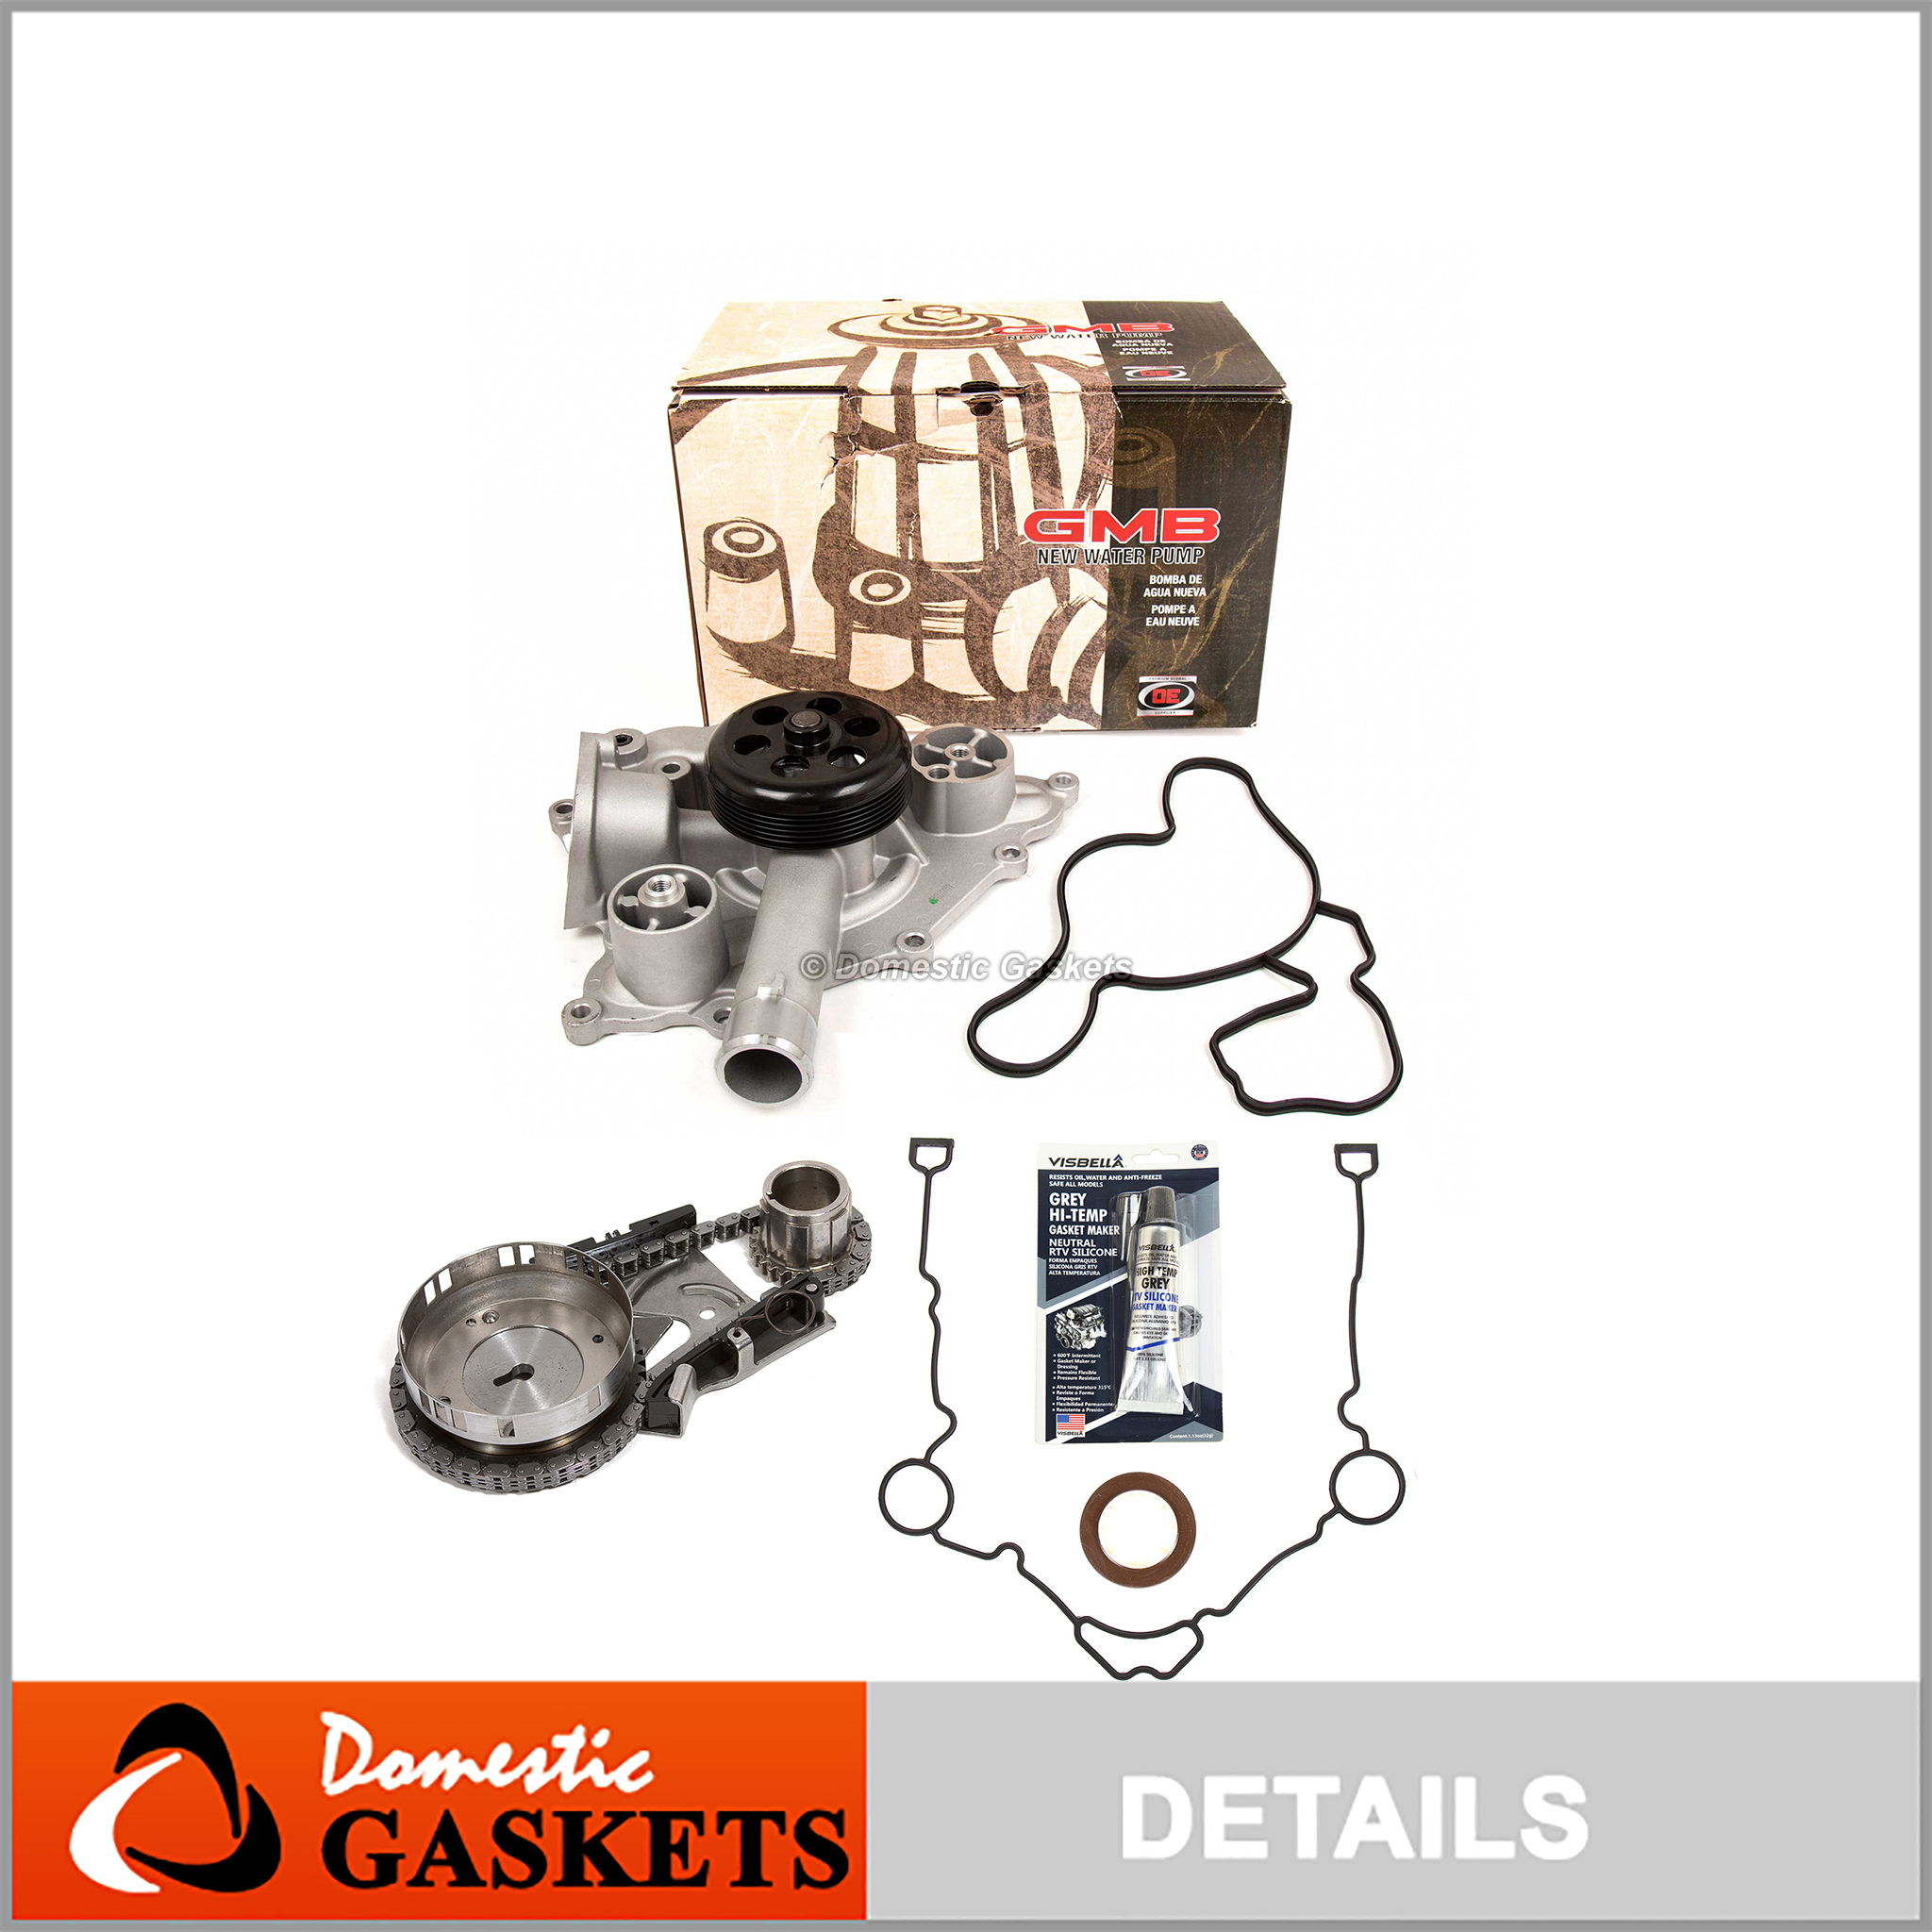 Timing Chain Kit Water Oil Pump Cover Gasket for 05-08 Chrysler Dodge Jeep 5.7